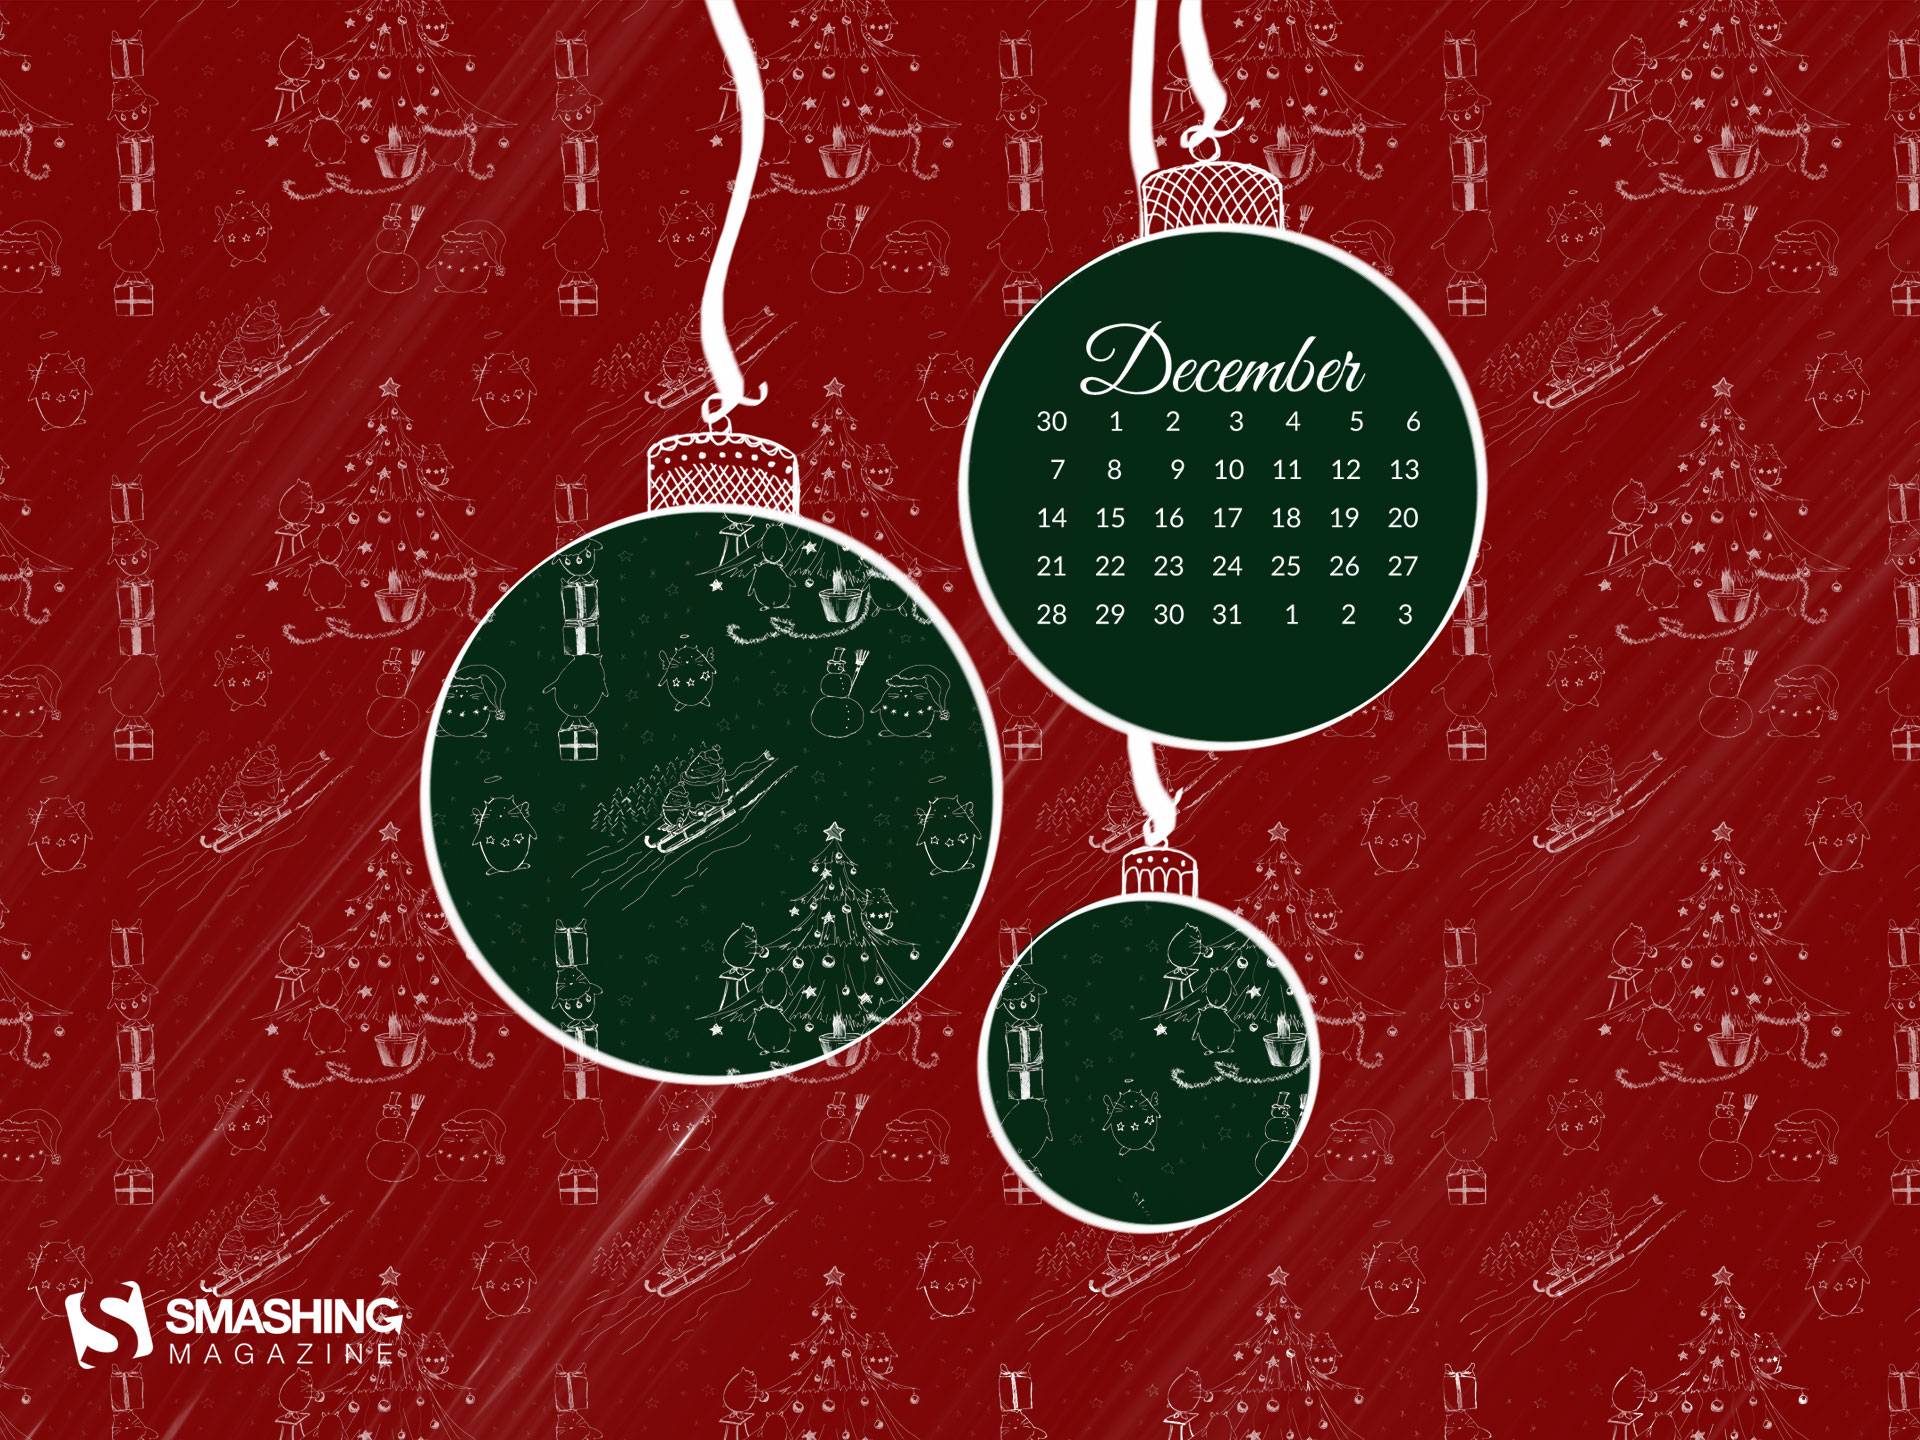 desktop wallpaper calendars  december 2015  u2014 smashing magazine